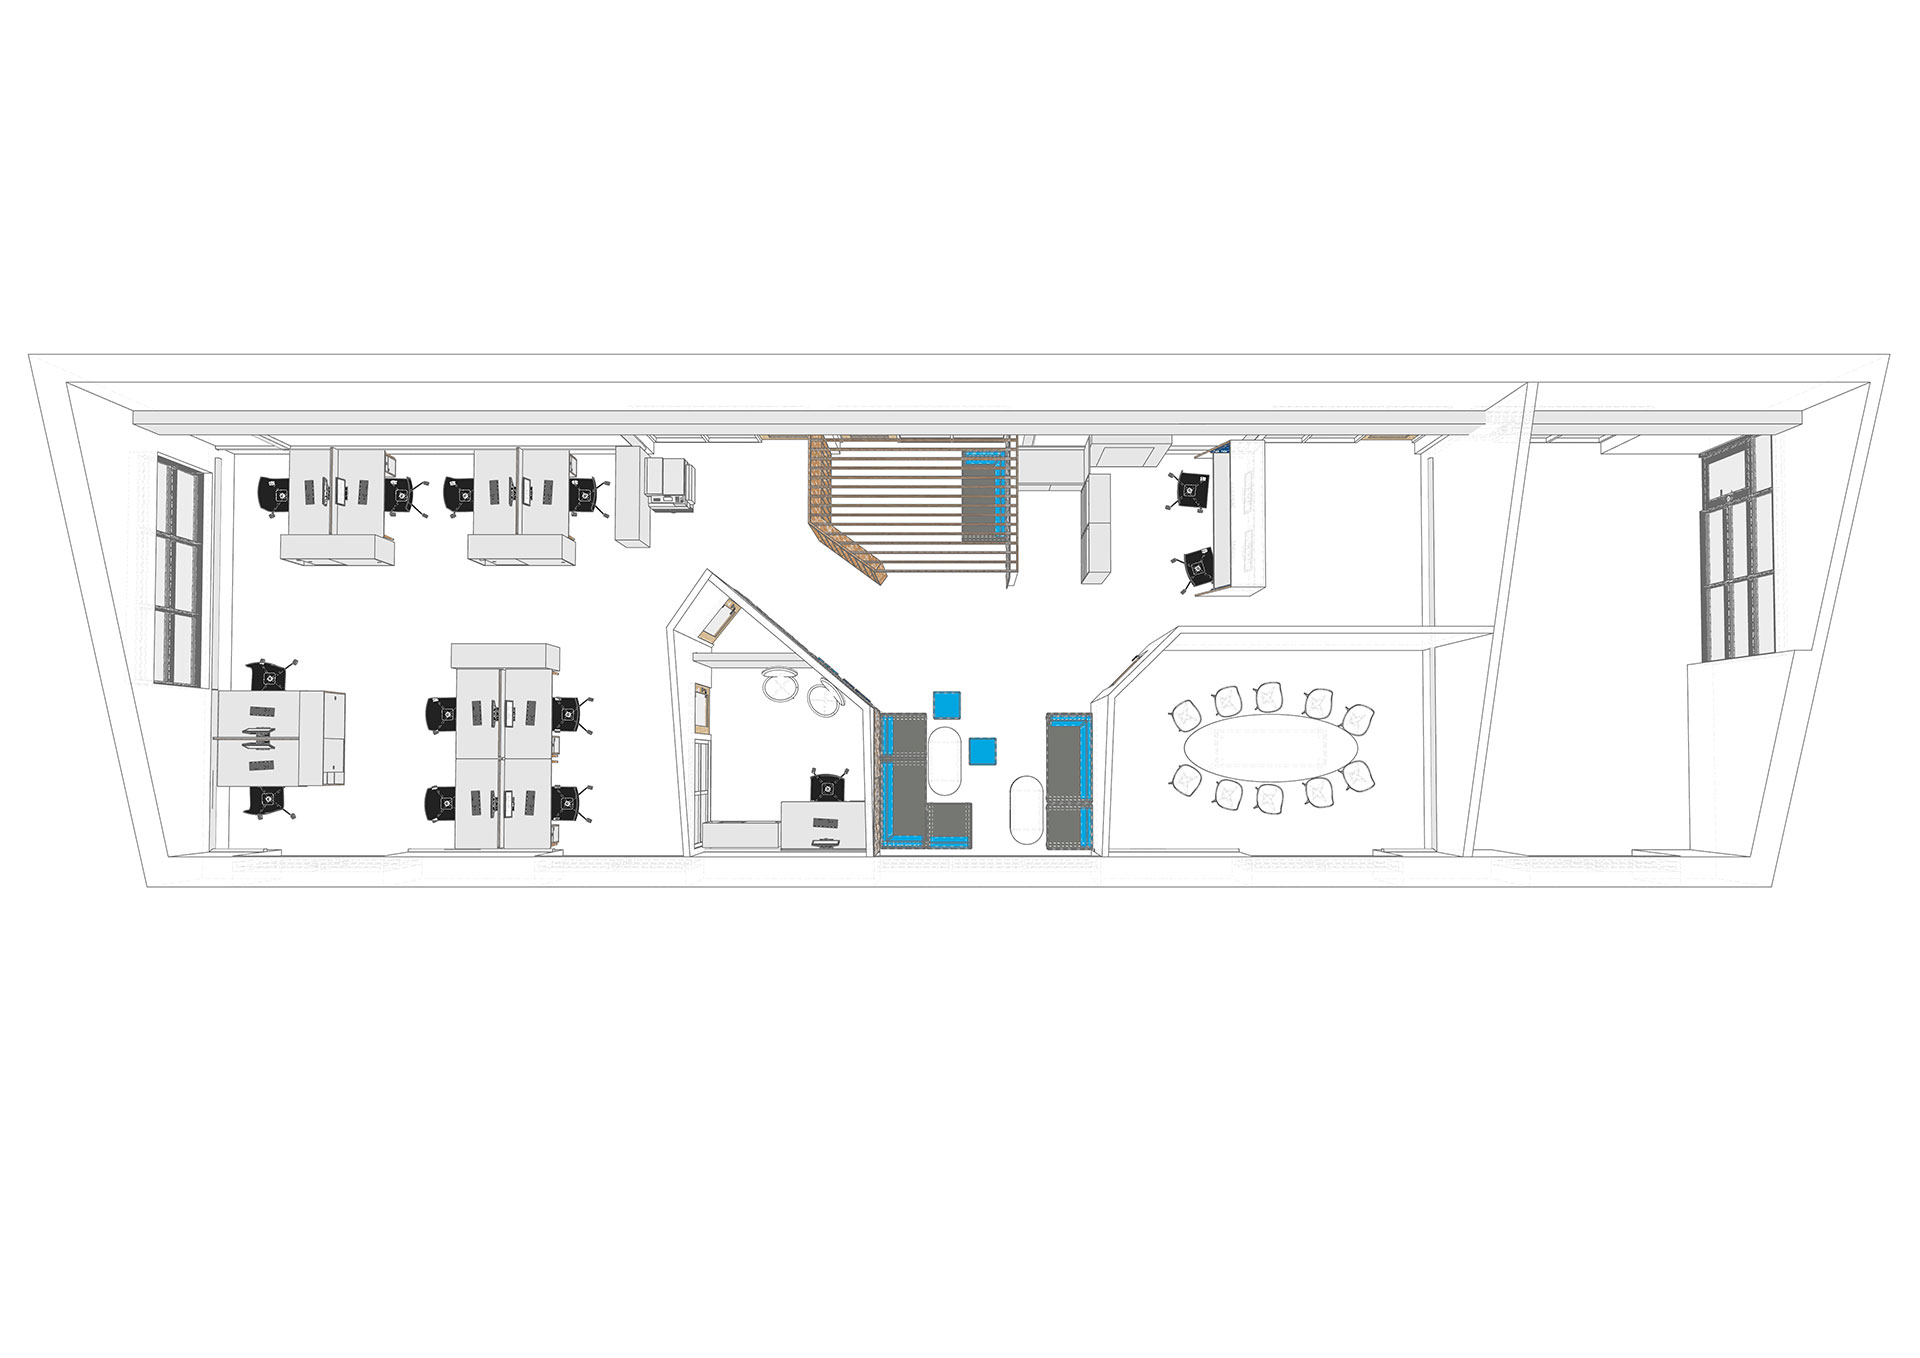 Space planning for Wave Hub Ltd office